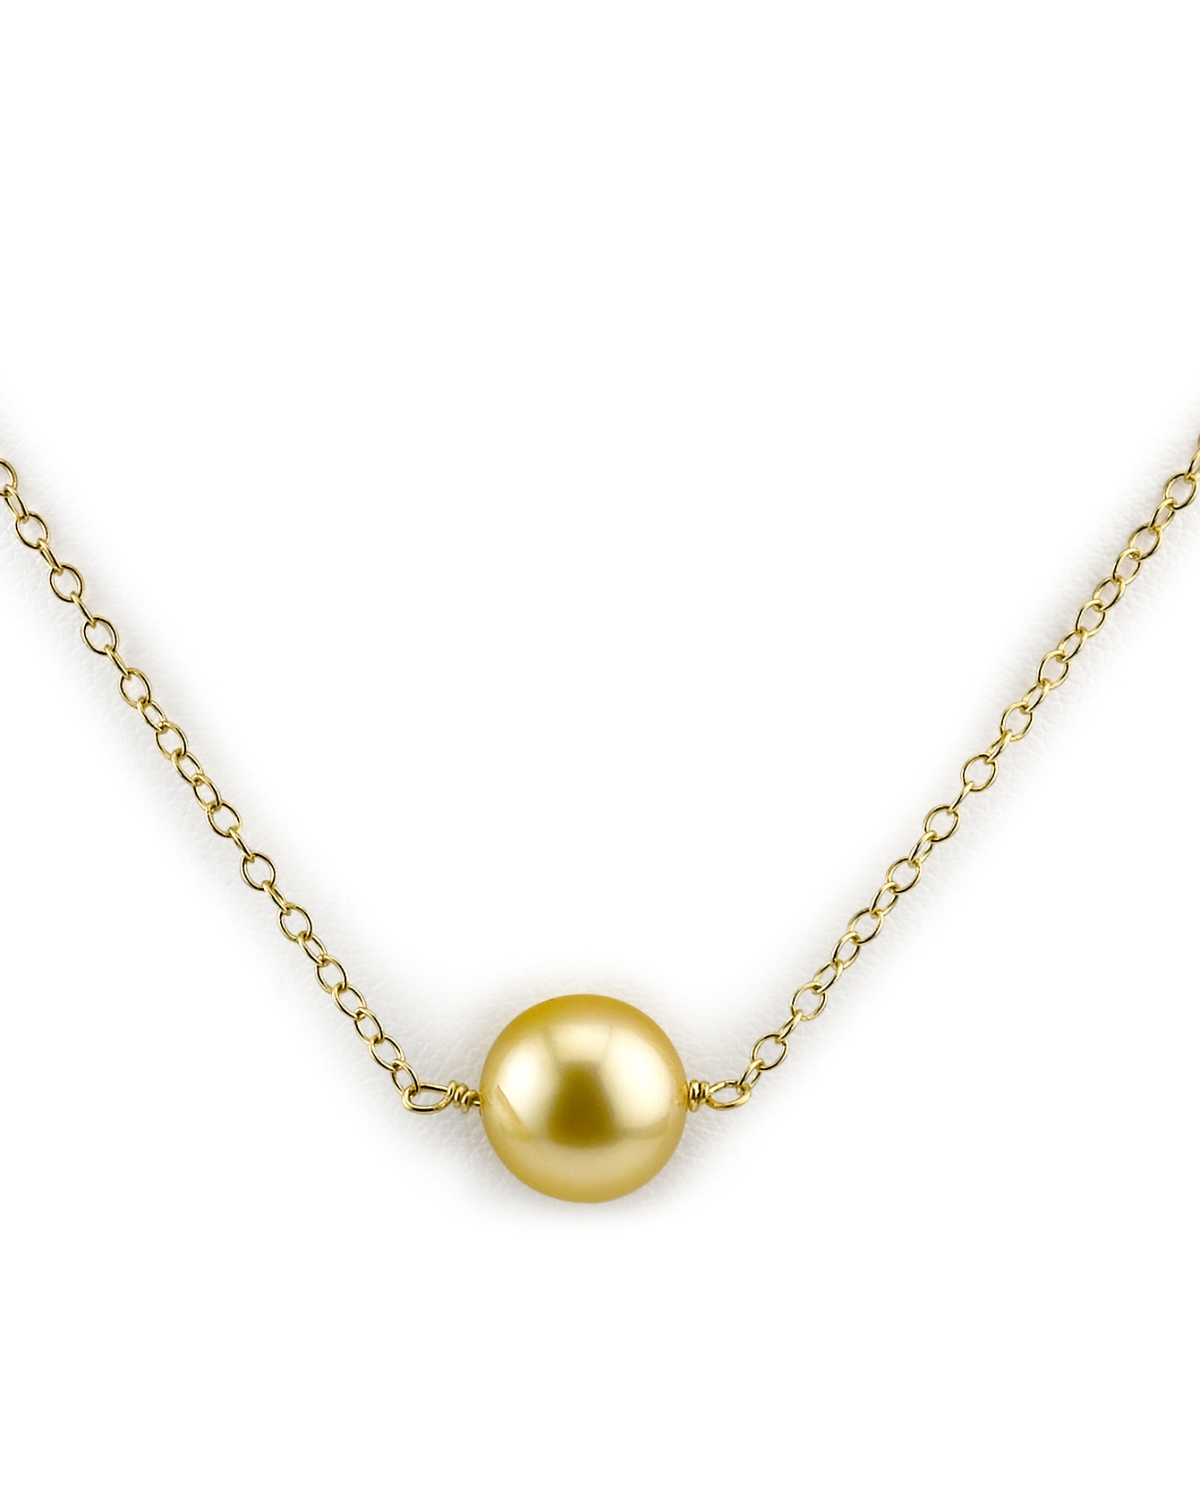 Golden Solitaire Pearl & Gold Pendant